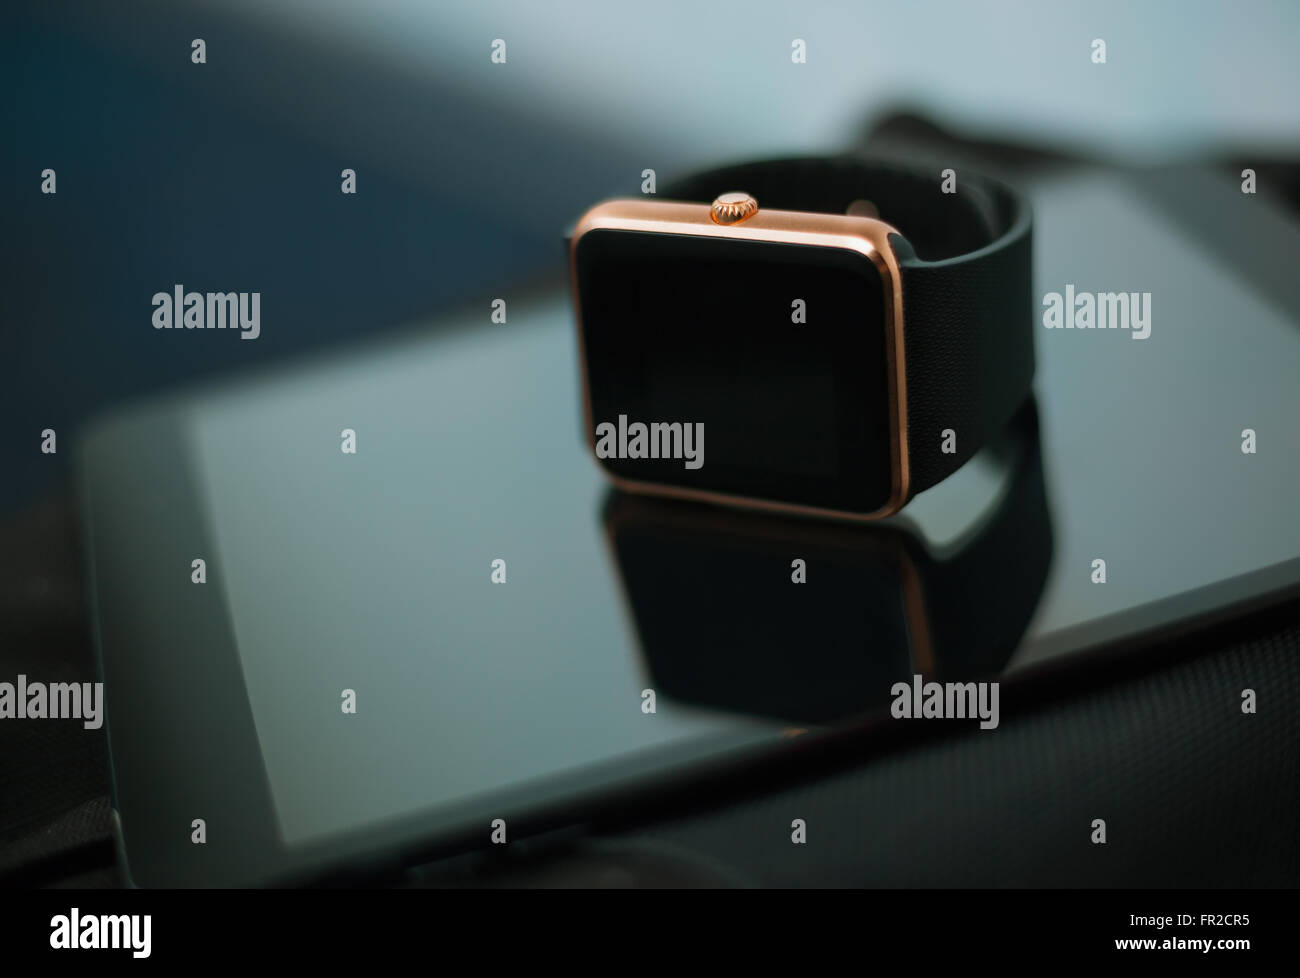 Wearable clever technology of today - smart wrist watch and tablet pc. This digital devices will let you stay connected - Stock Image